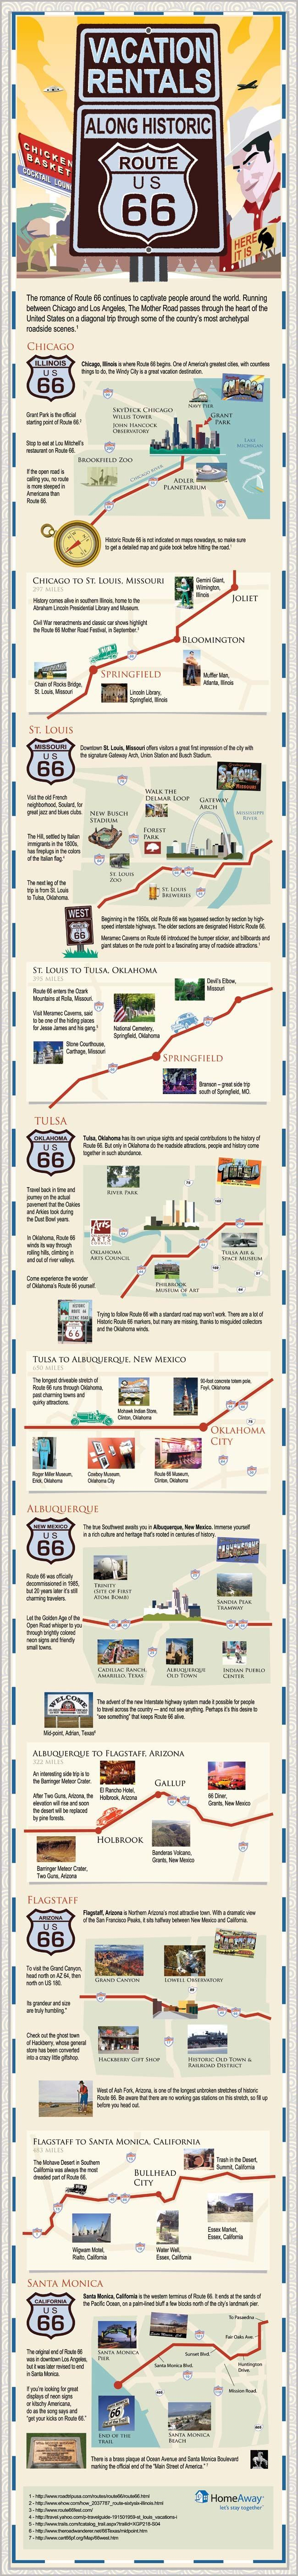 Vacation Rentals Along Route 66 -- A fun infographic from @HomeAway.com